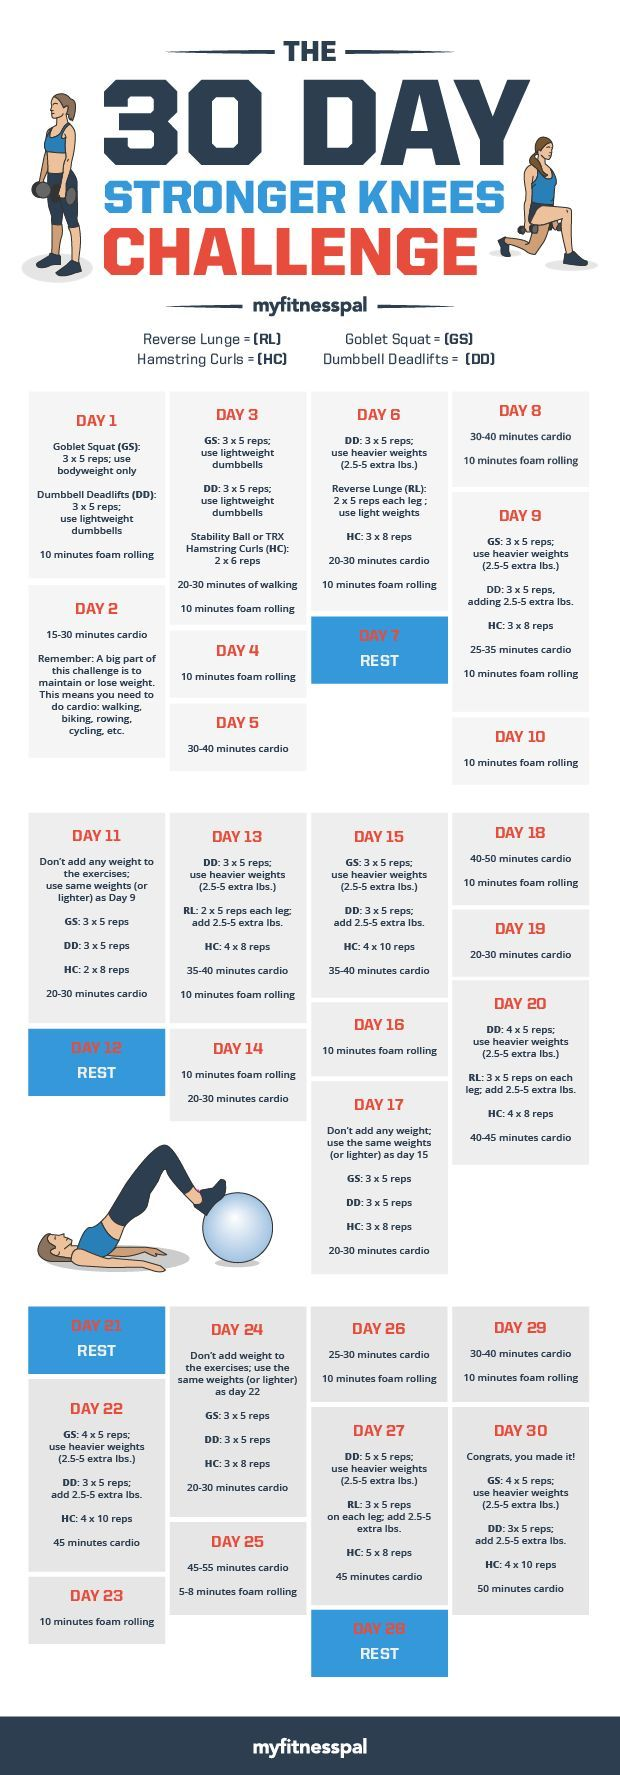 Knee Pain: The 30-Day Stronger Knees Challenge